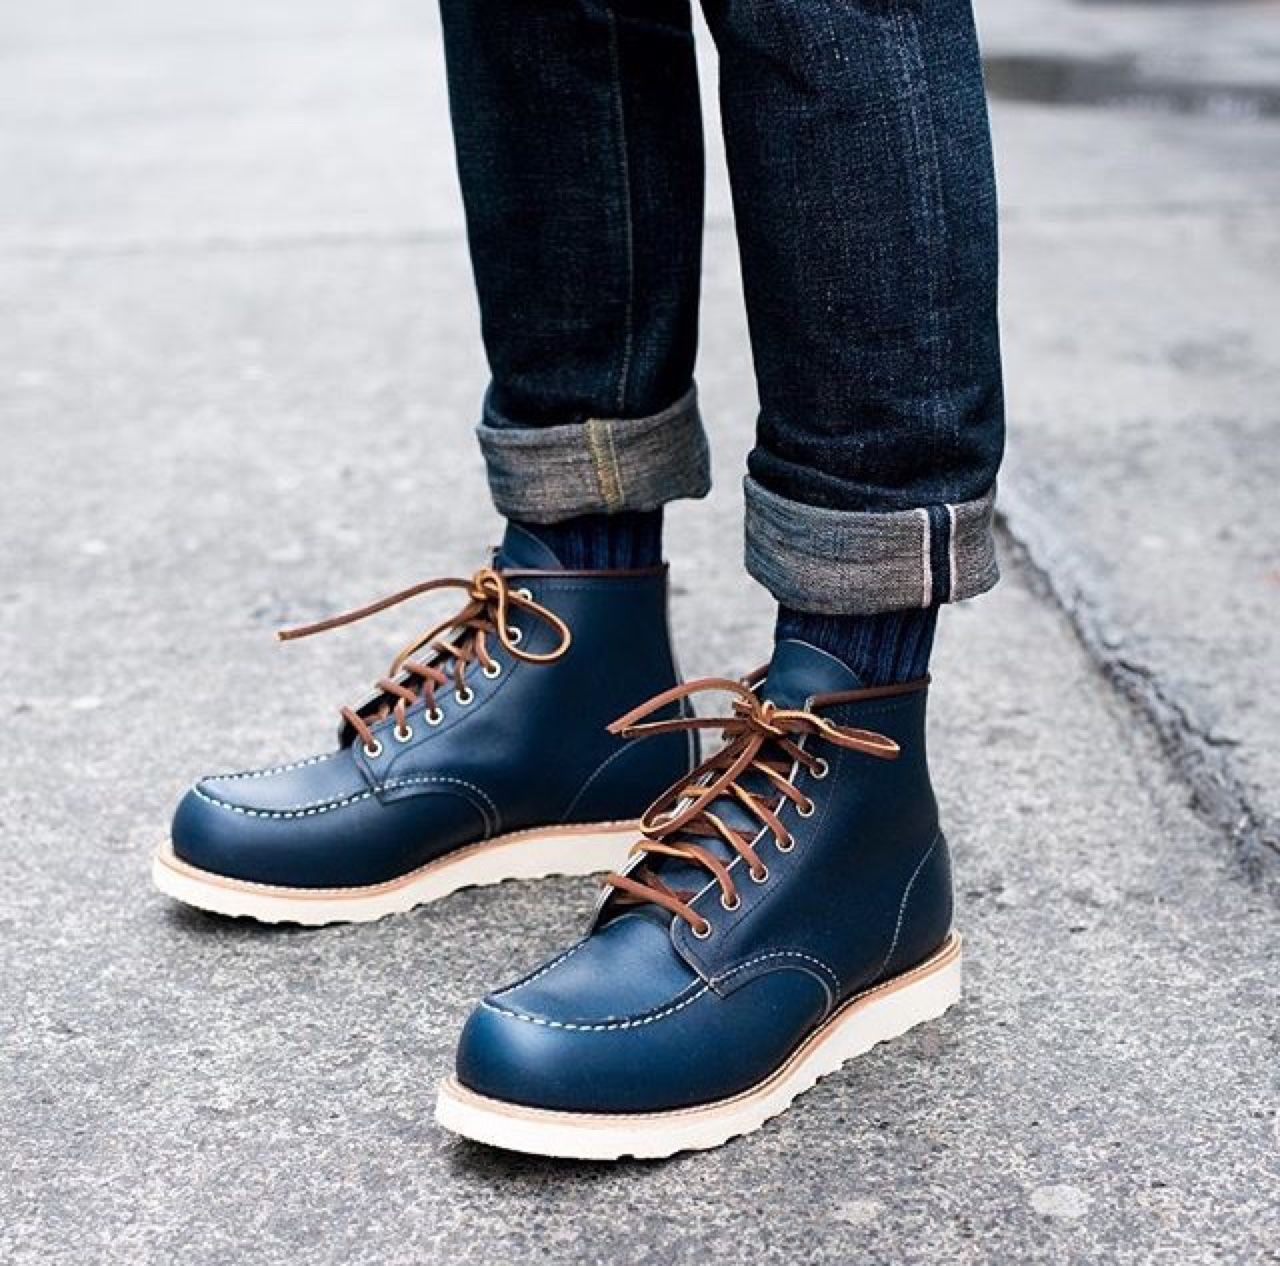 1000  images about red wing shoes. on Pinterest | Lace up boots ...